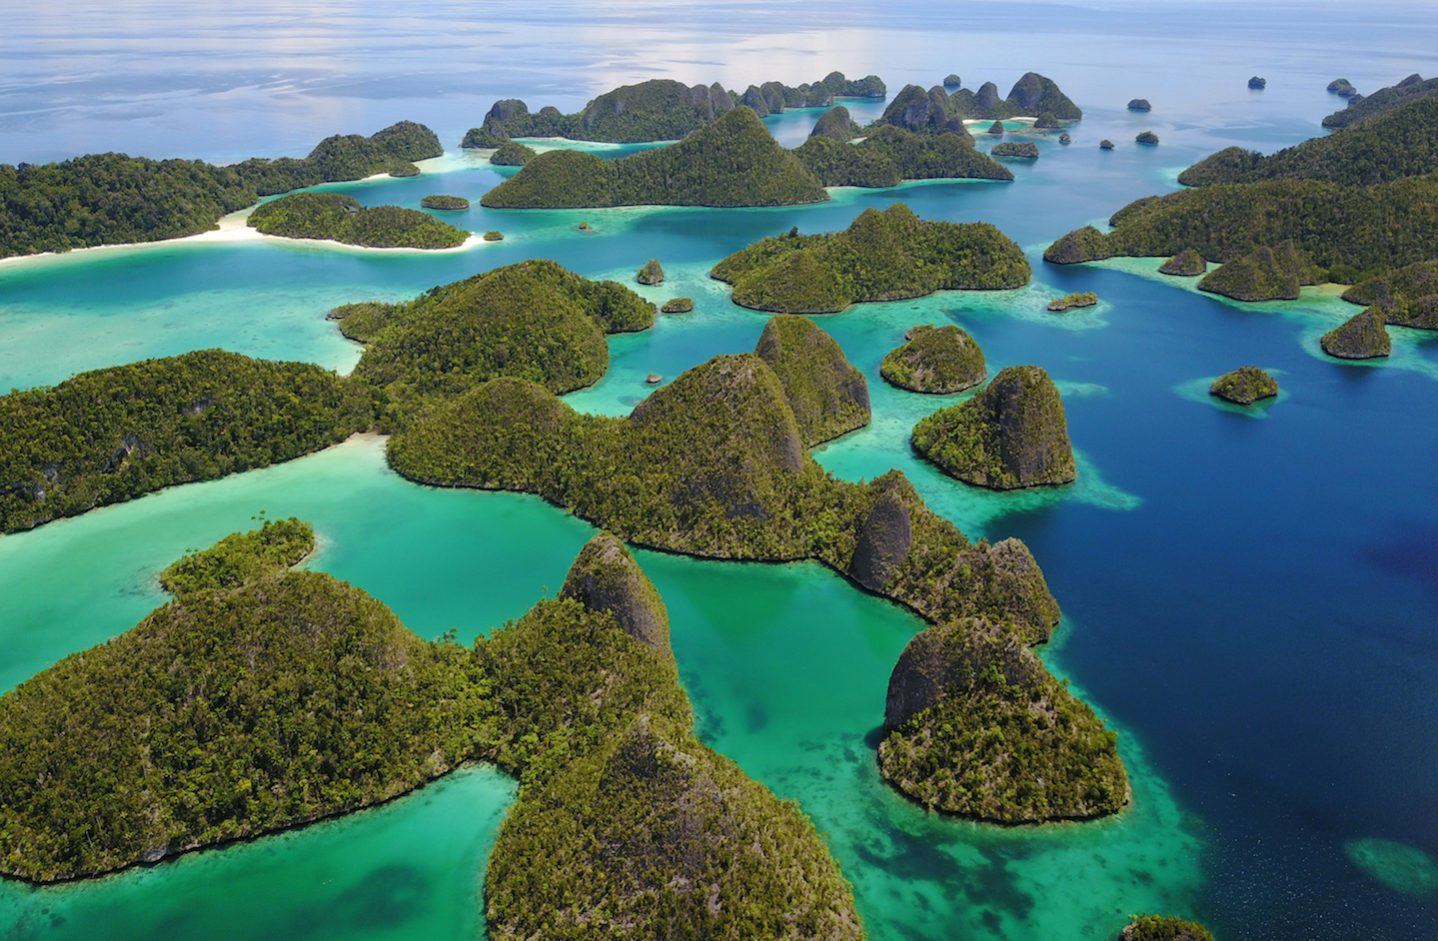 When is the best time to visit Raja Ampat?